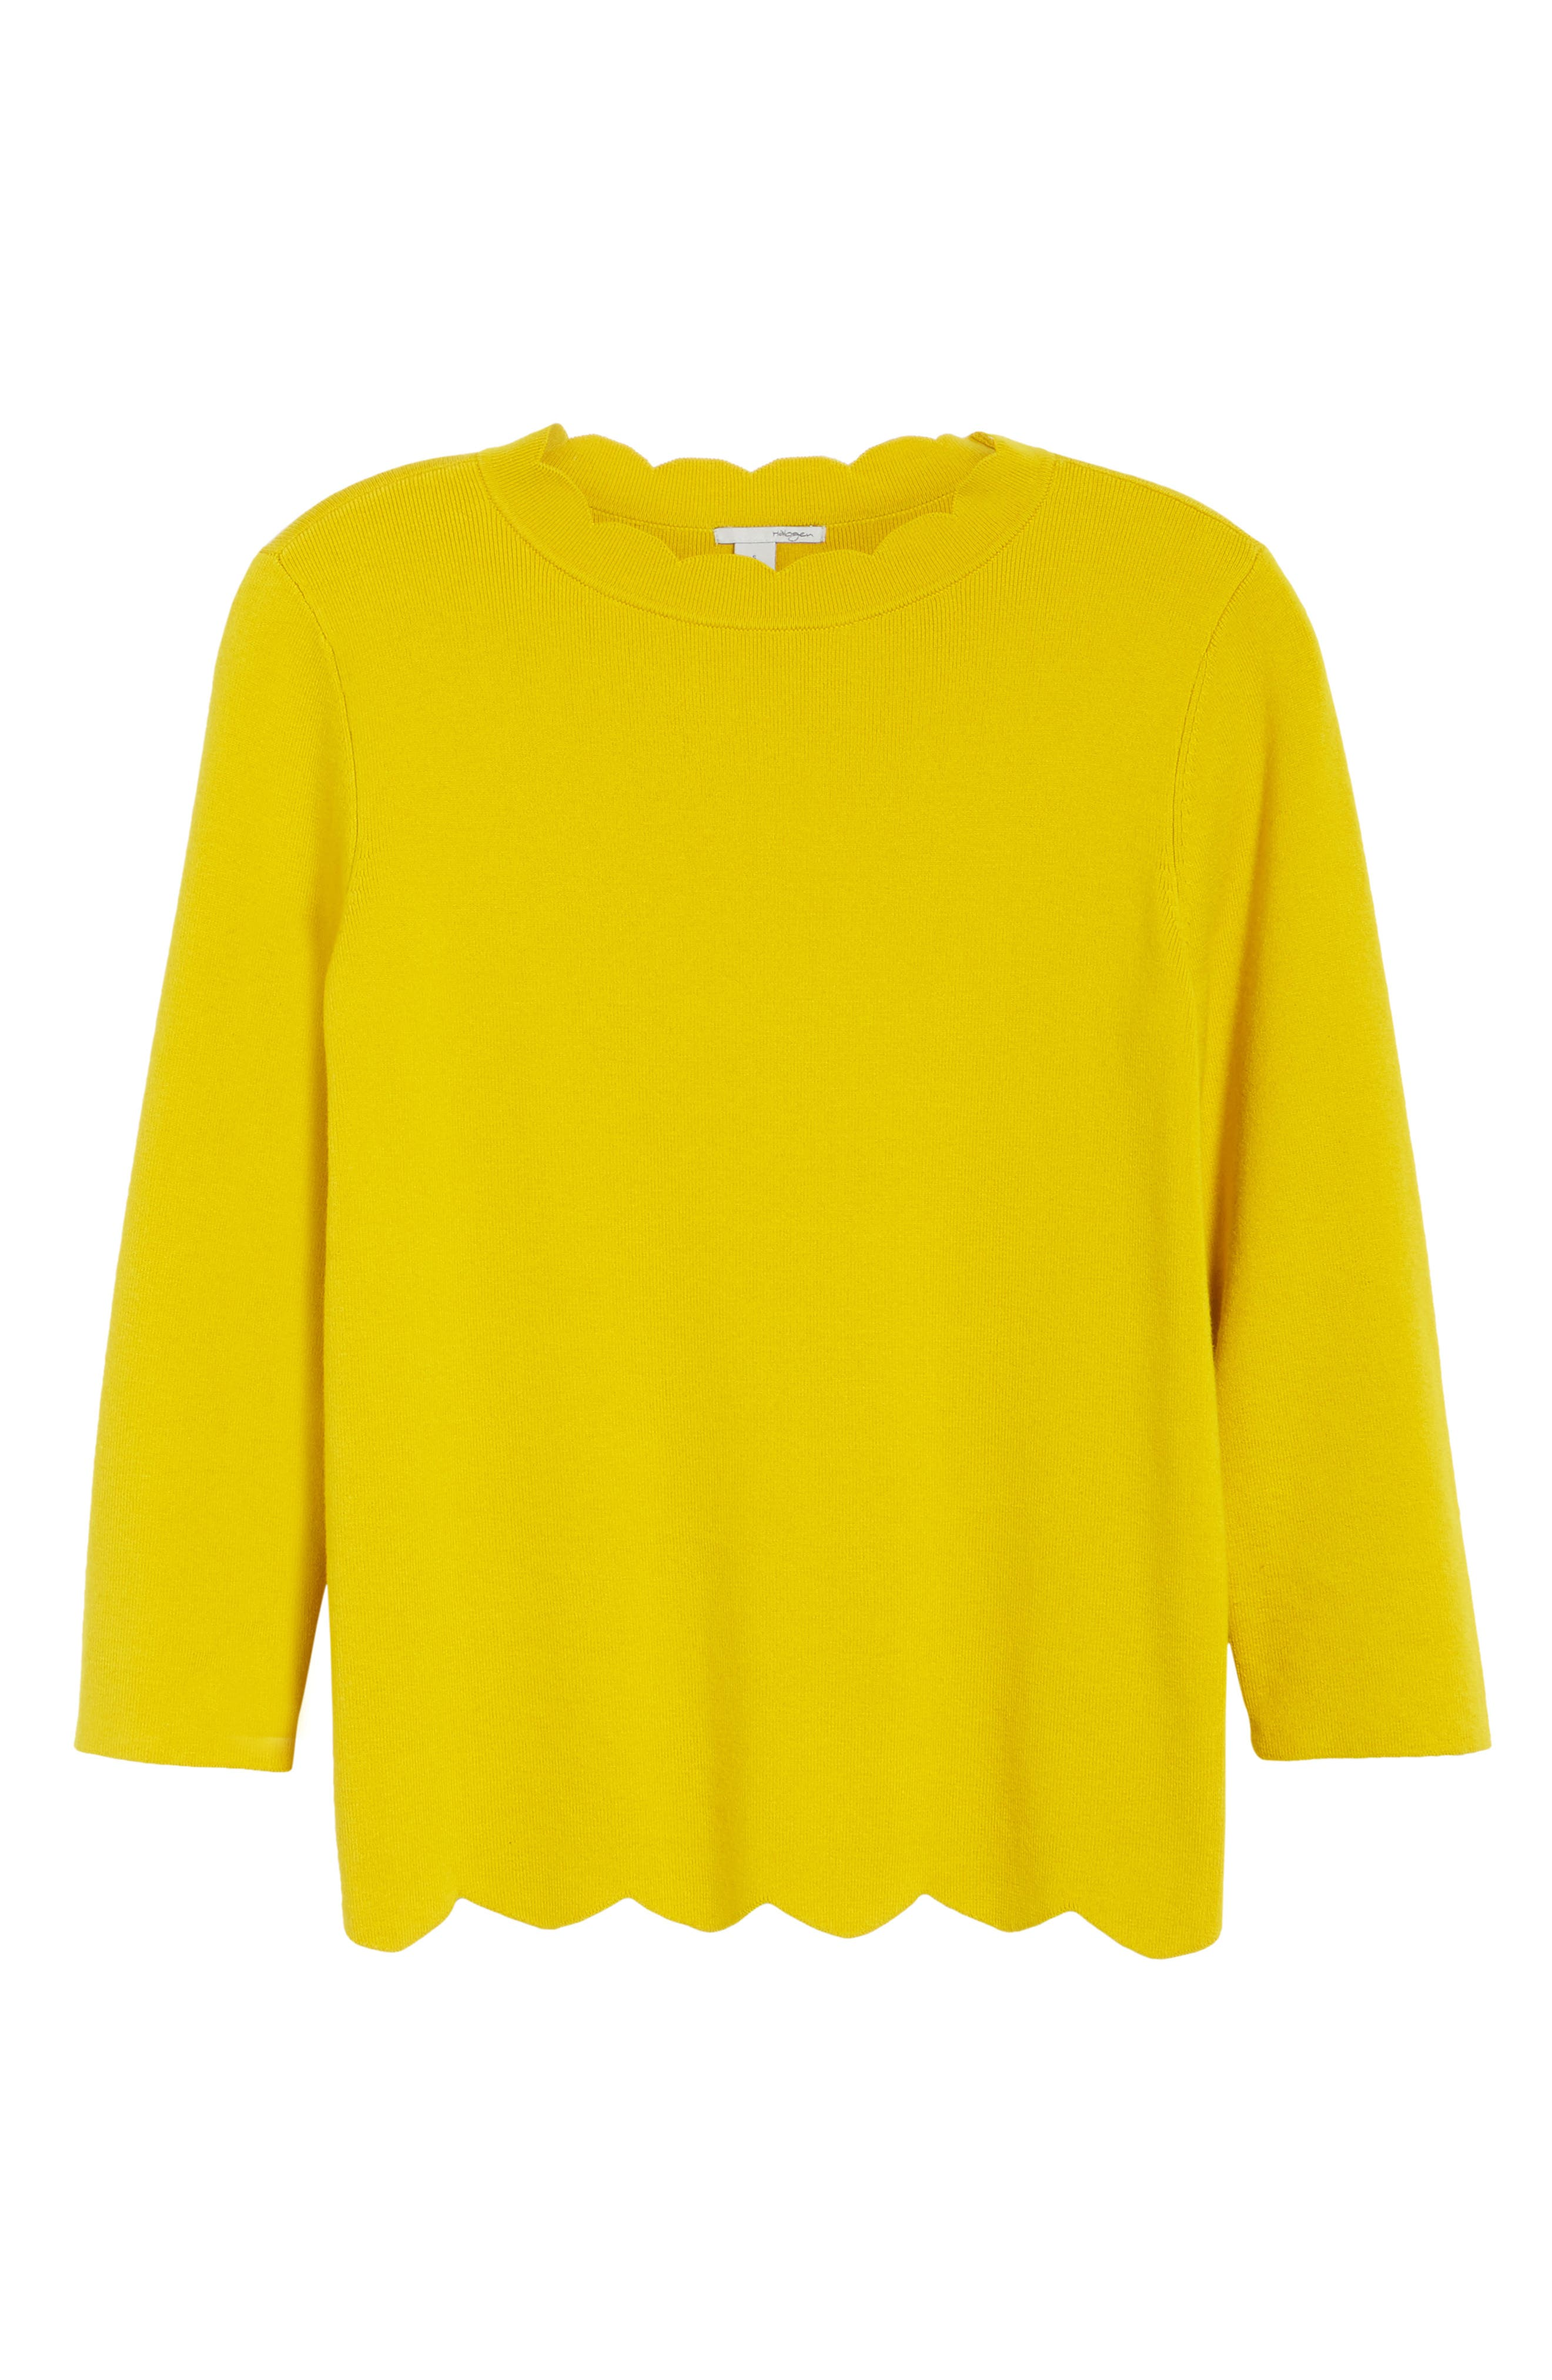 Halogen Scallop Edge Sweater,                             Alternate thumbnail 65, color,